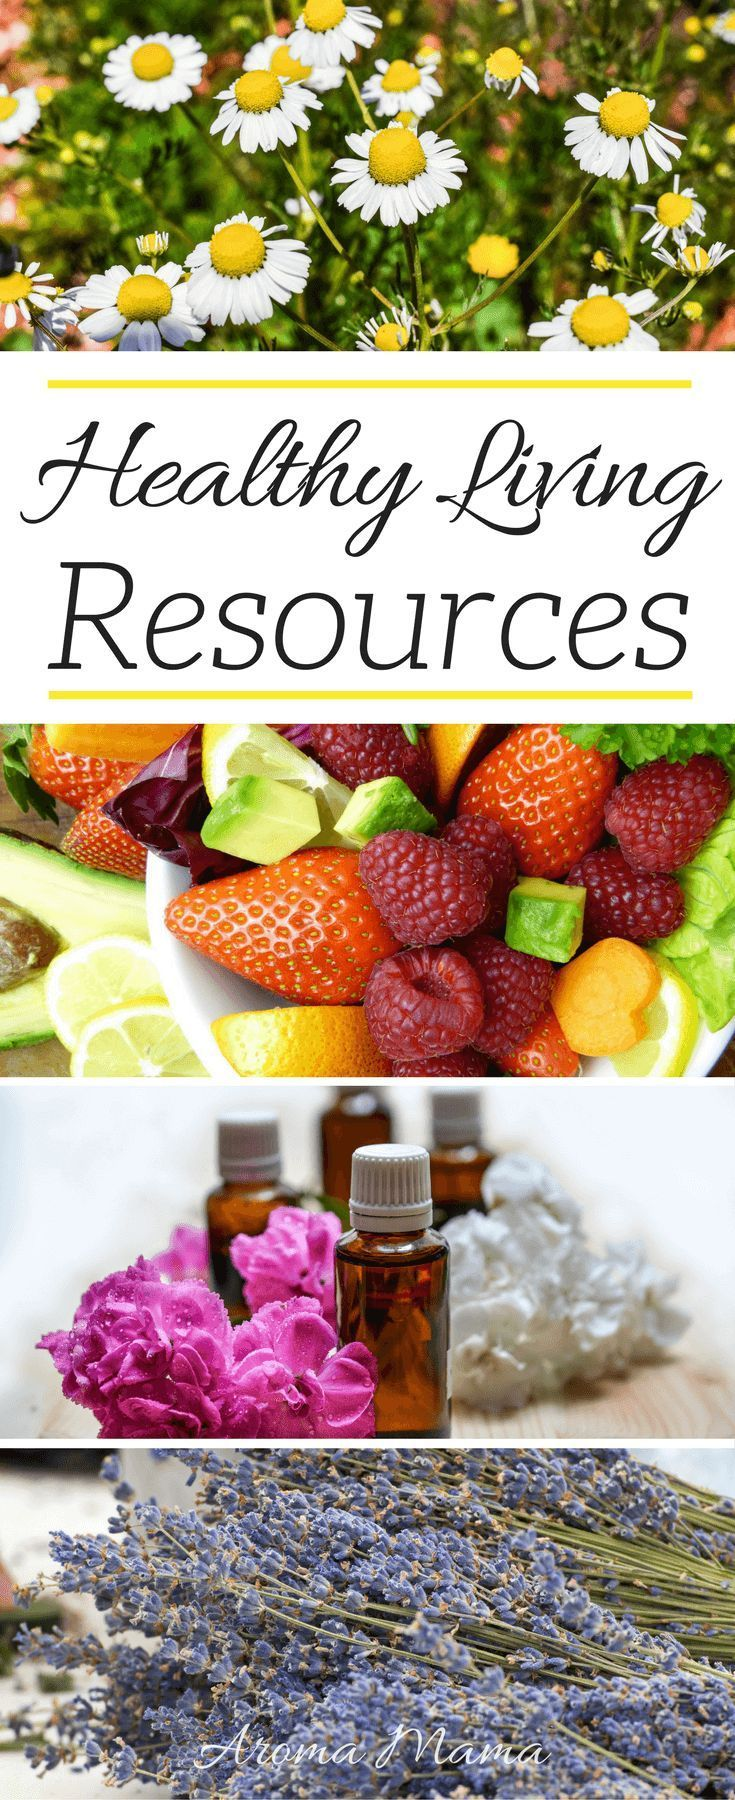 Healthy Living Resources is full of resources for…